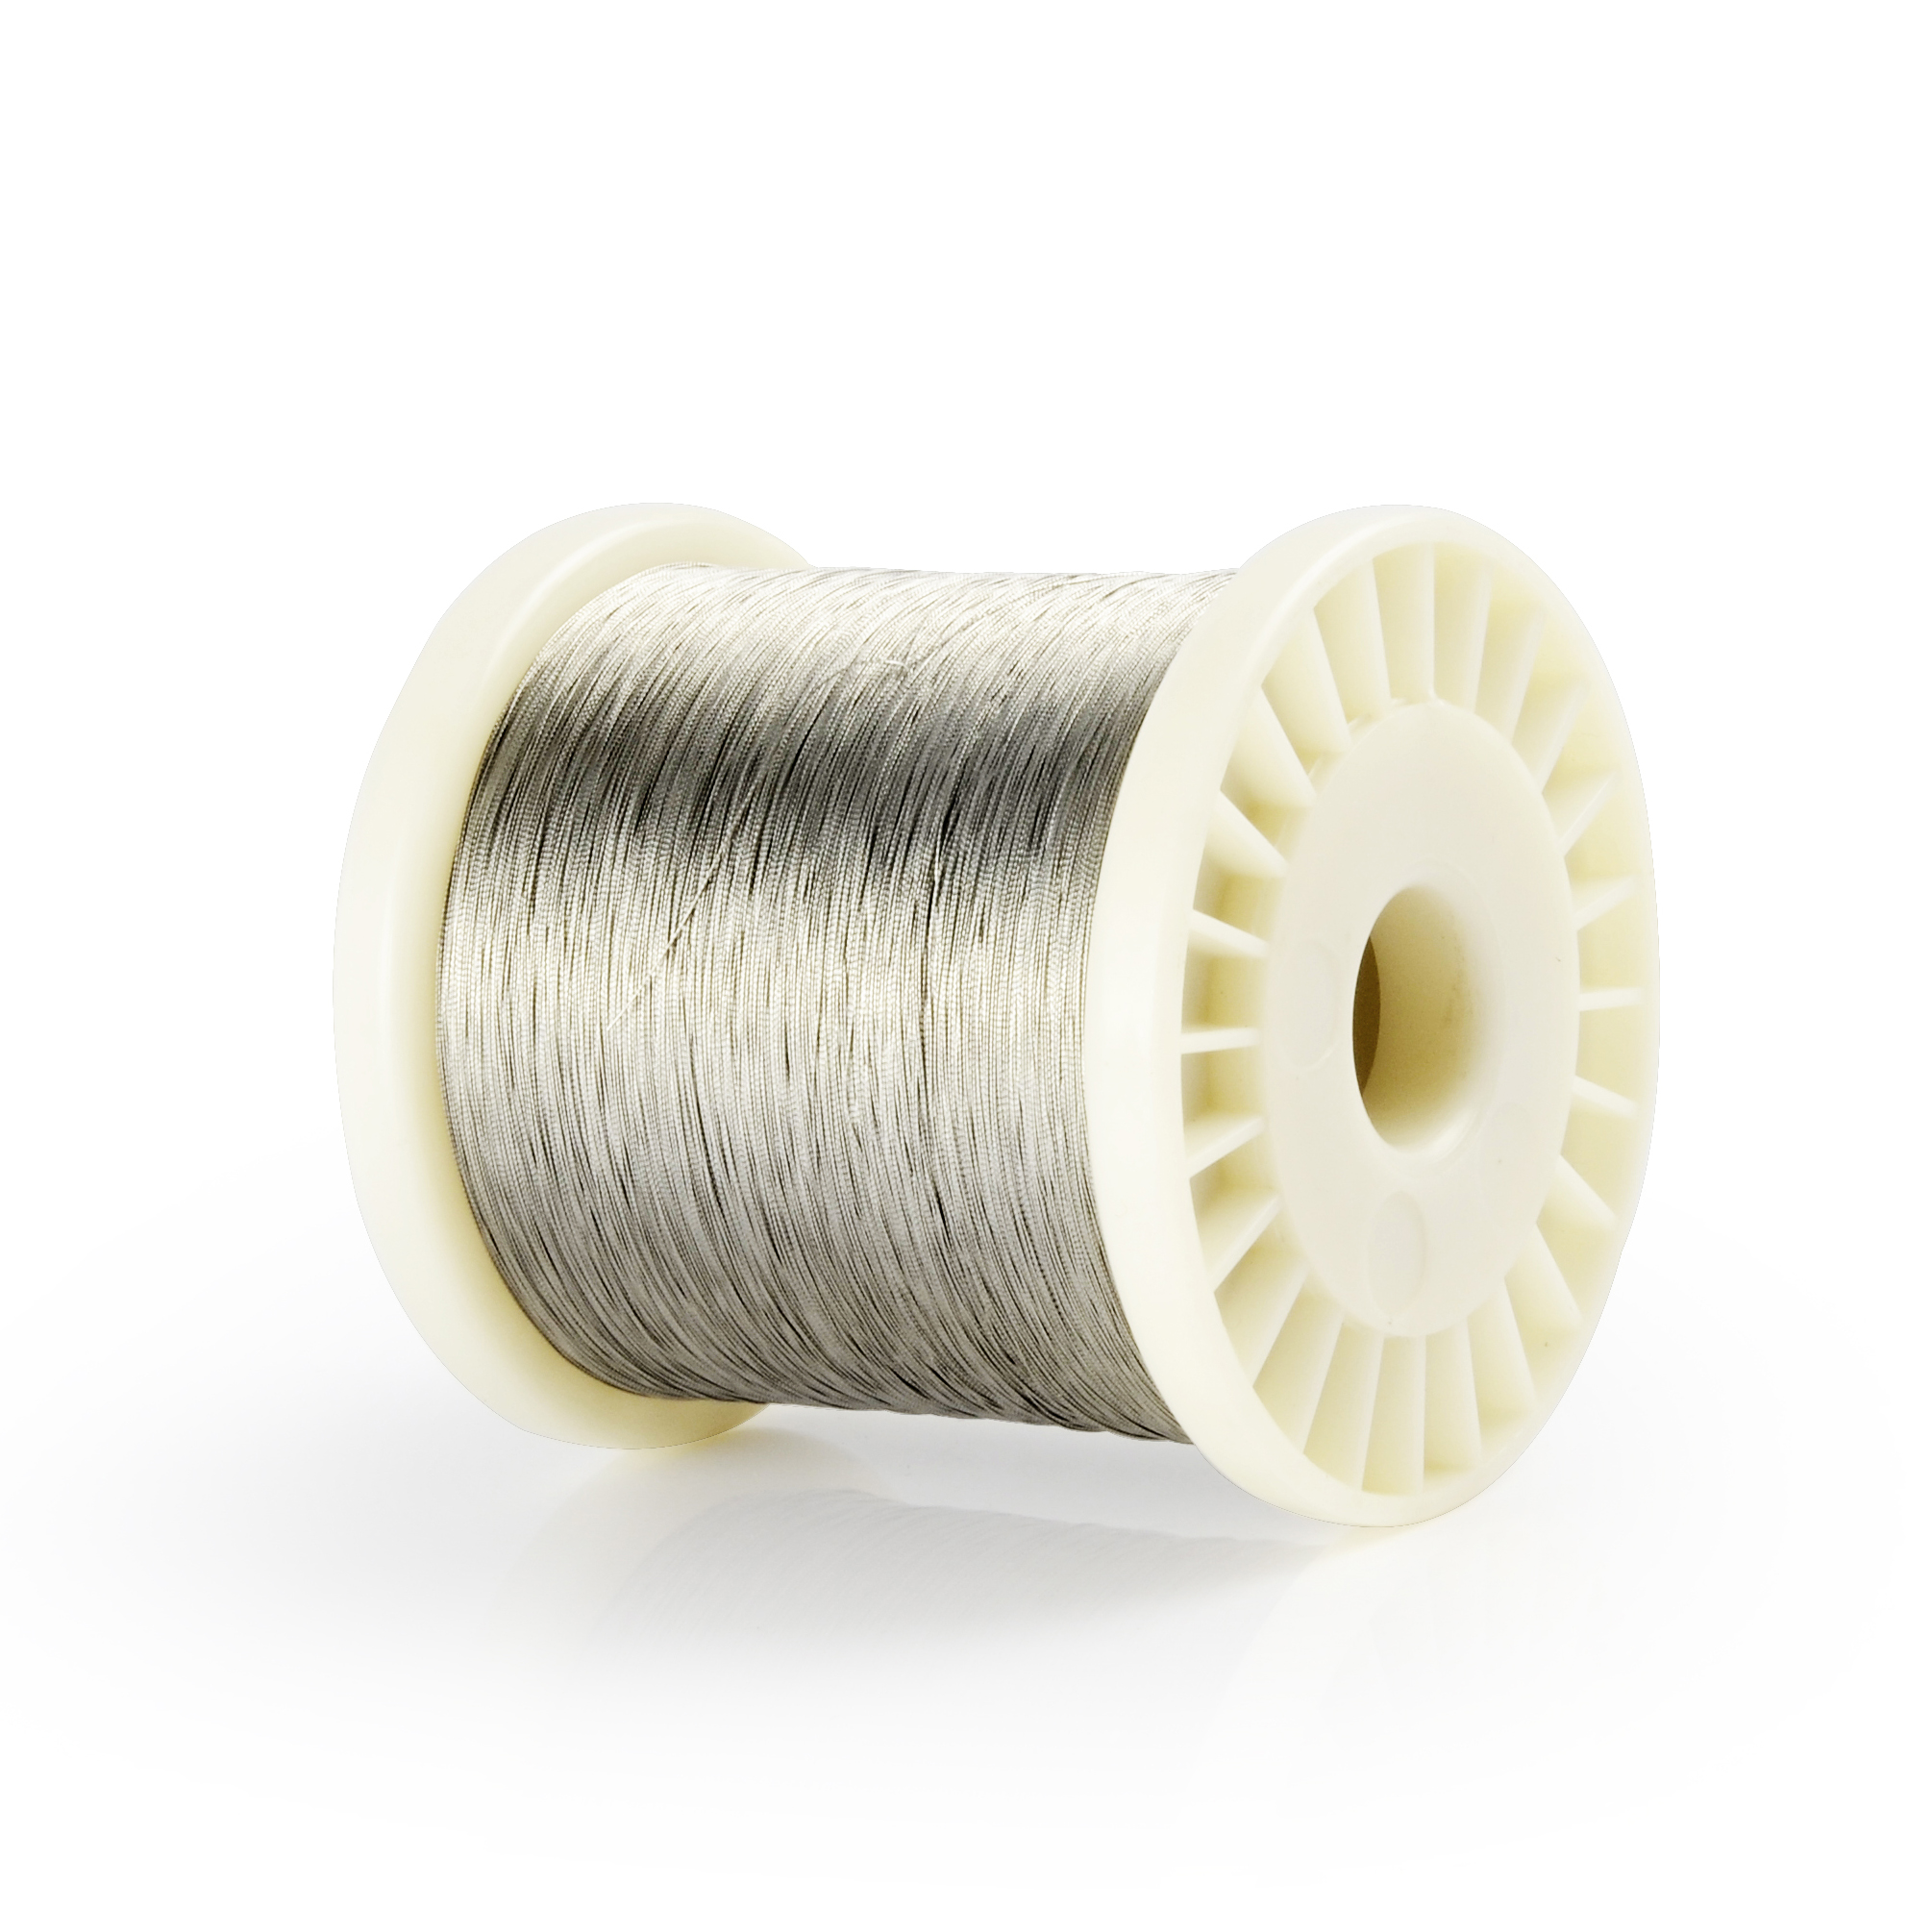 Tinned Metallized Wire Featured Image